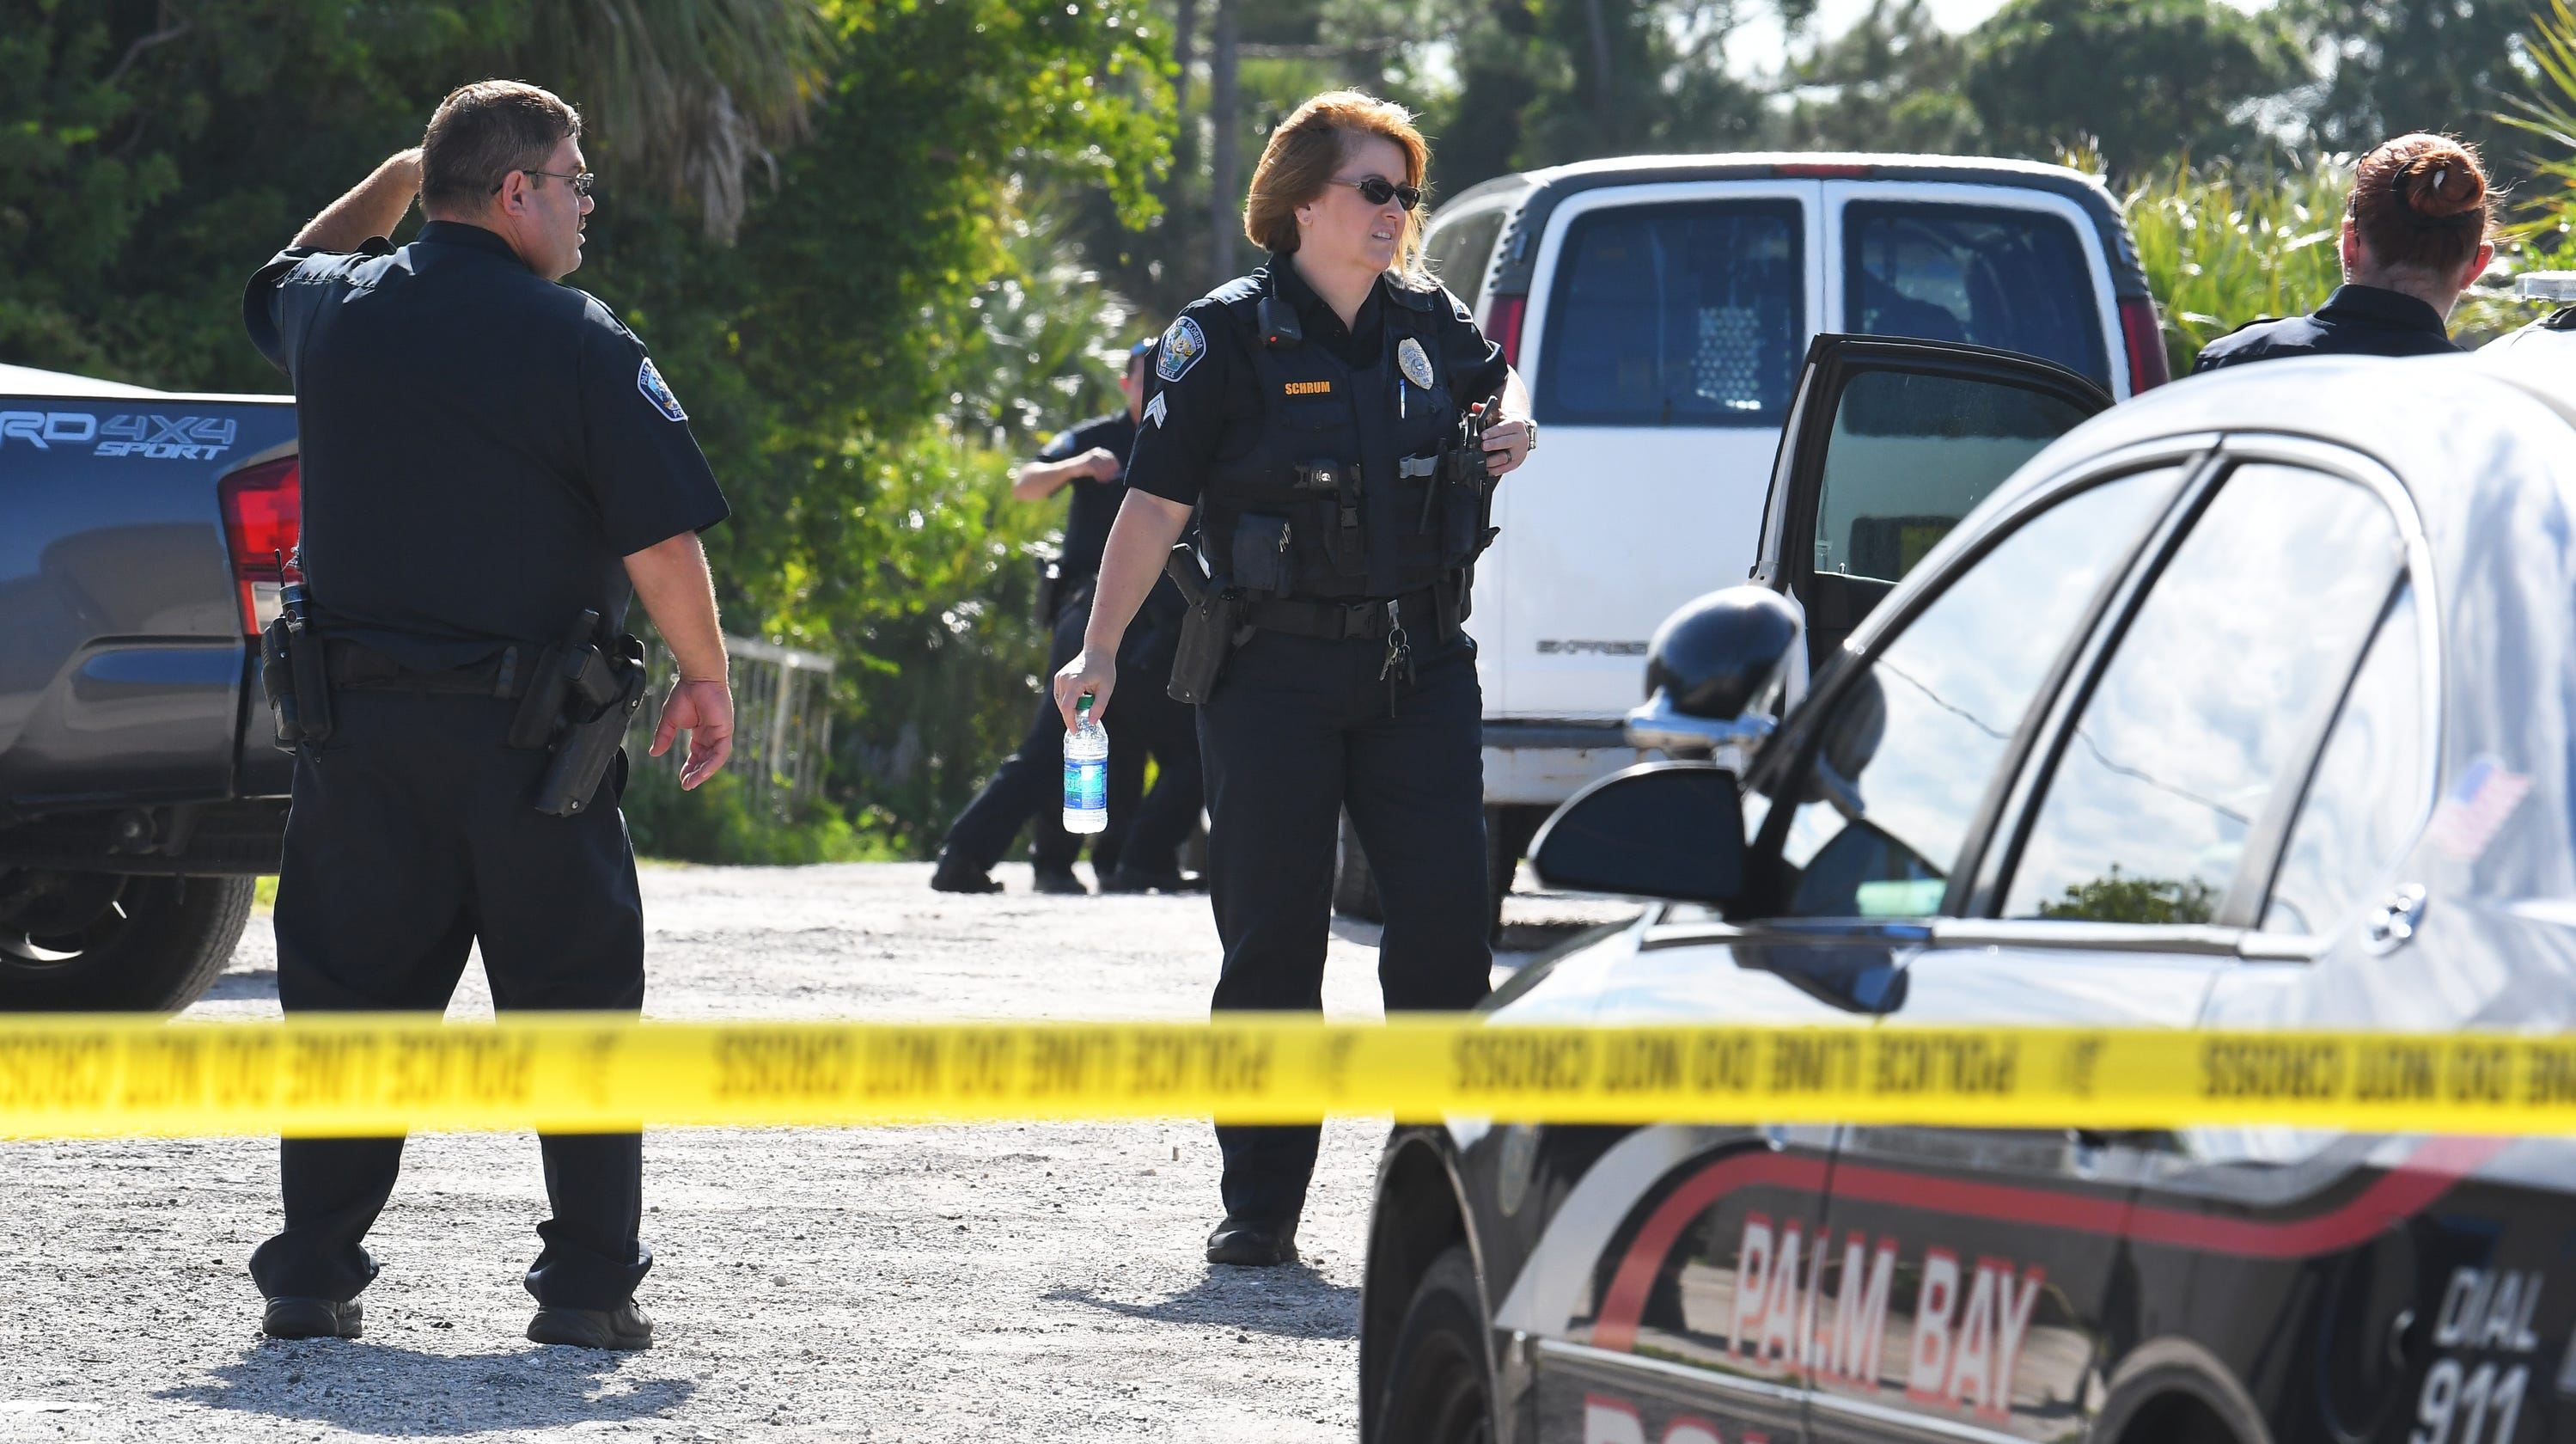 Shootings, stabbing, cannabalism, fatal crash all reported in